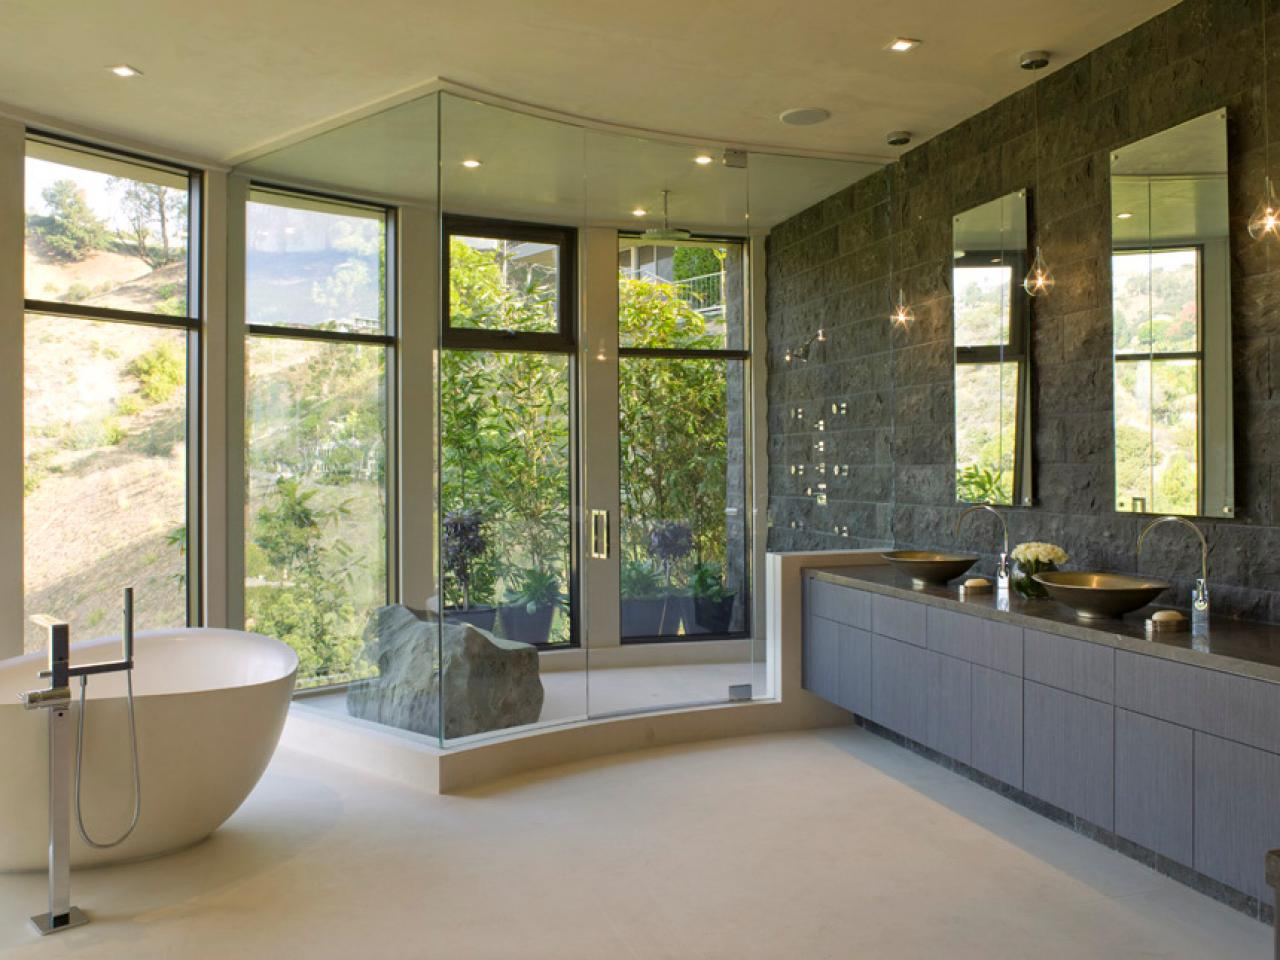 traditional bathroom designs - Bathroom Designs Contemporary